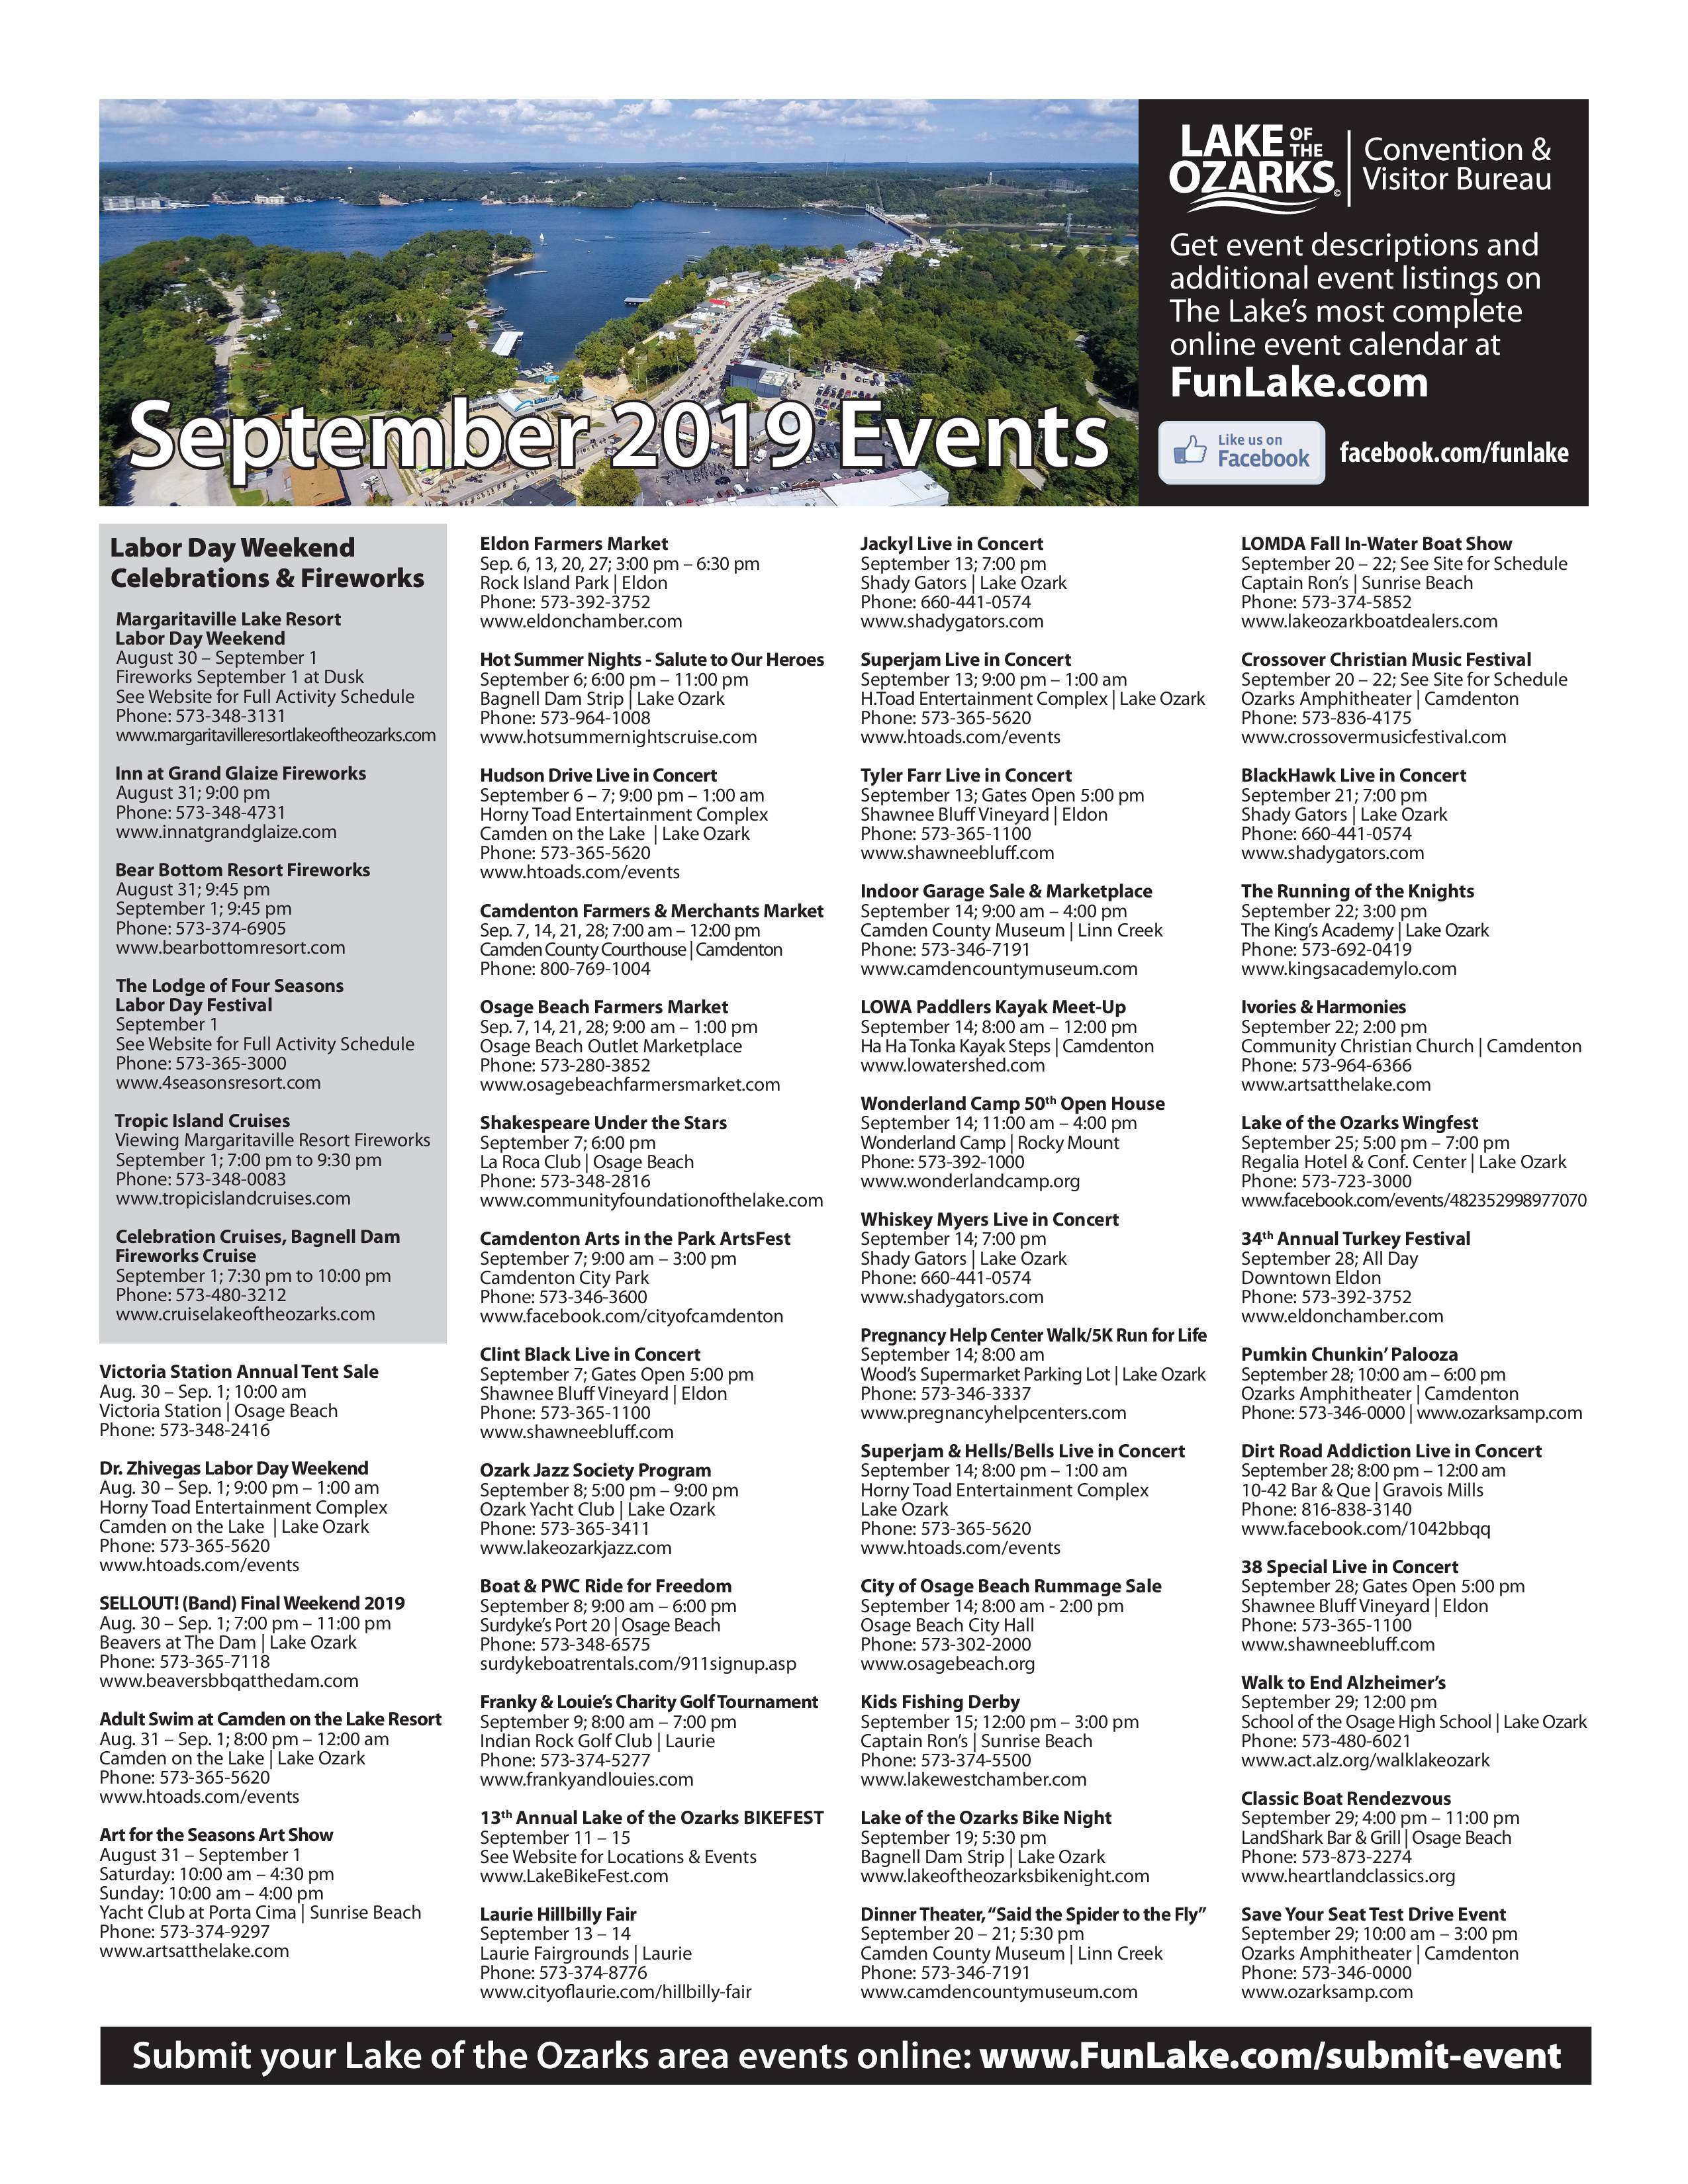 Labor Day Weekend and September Events Calendar